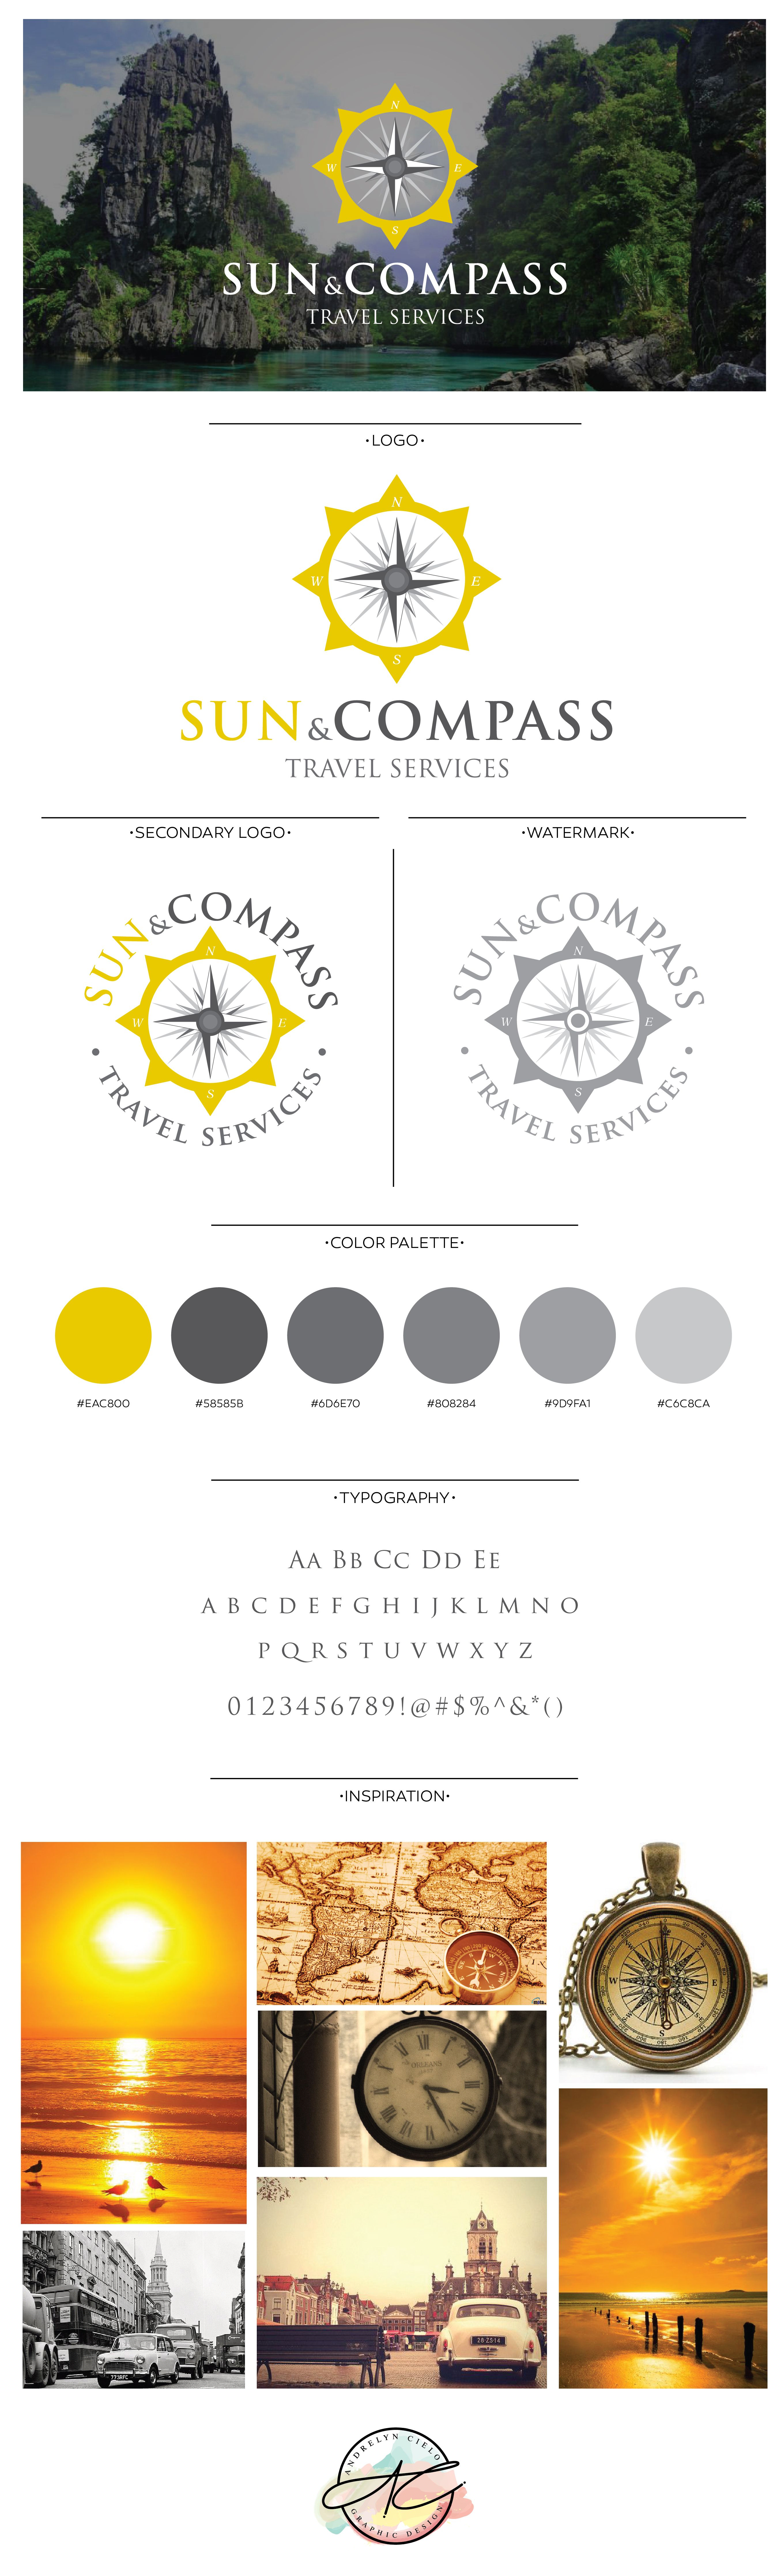 sun and pass travel agency logo and branding design